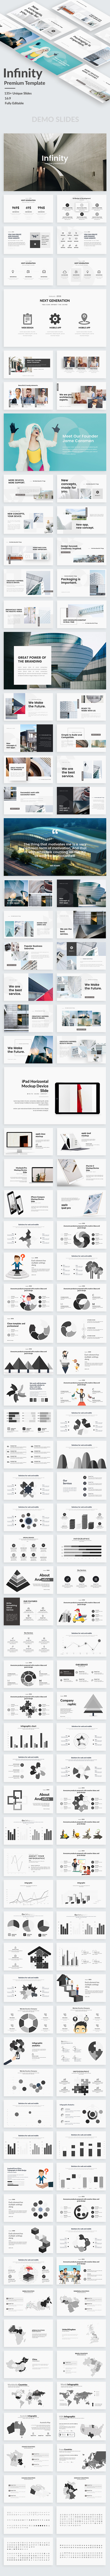 GraphicRiver Infinity Creative Google Slide Template 20967832